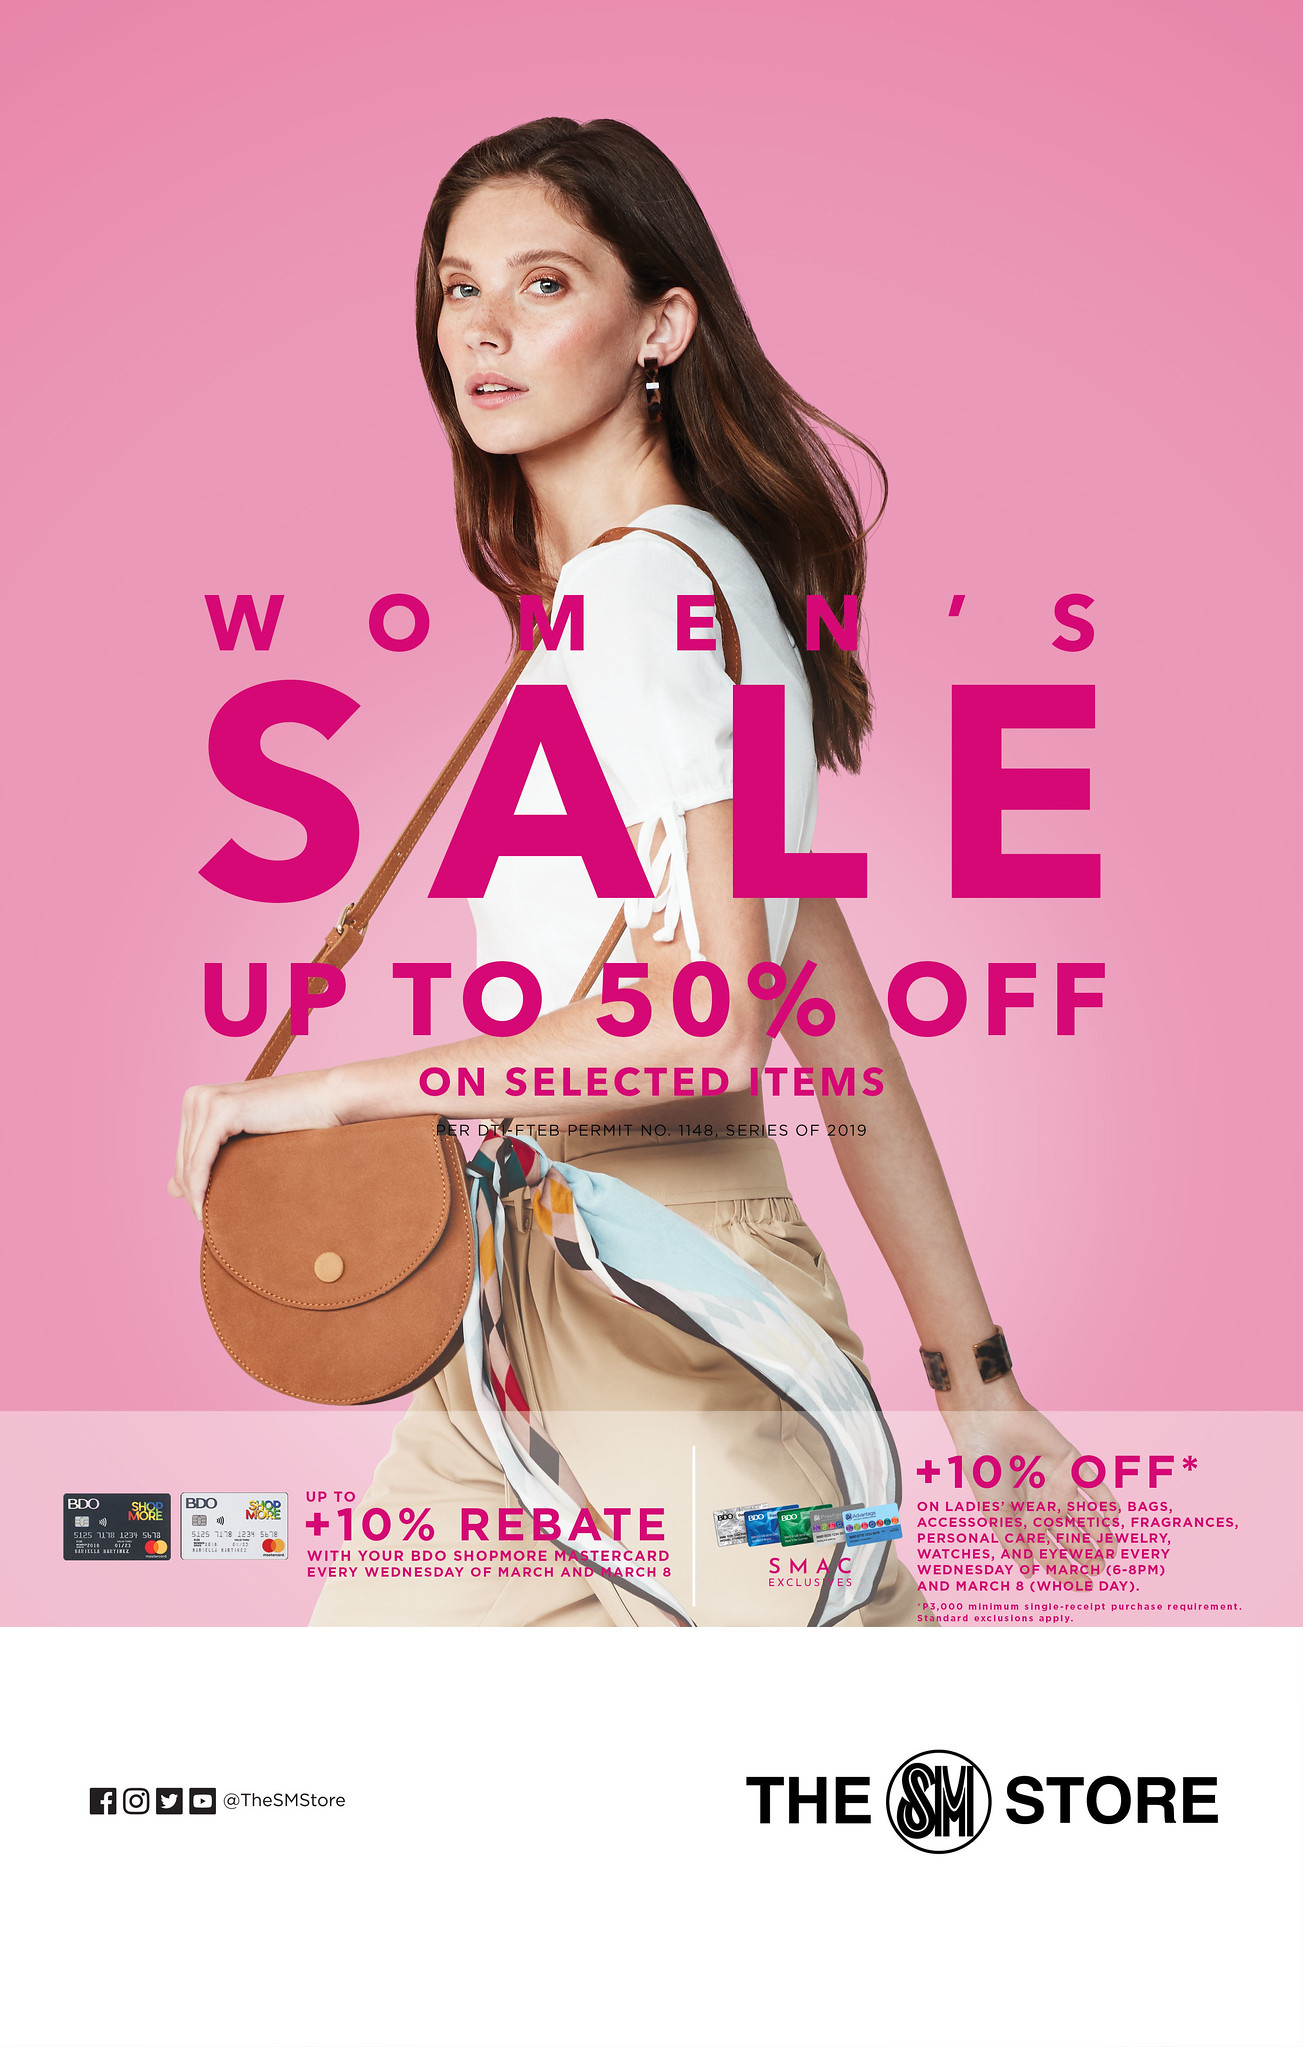 SM商店庆祝女性's Month with Women's 特卖 and More!